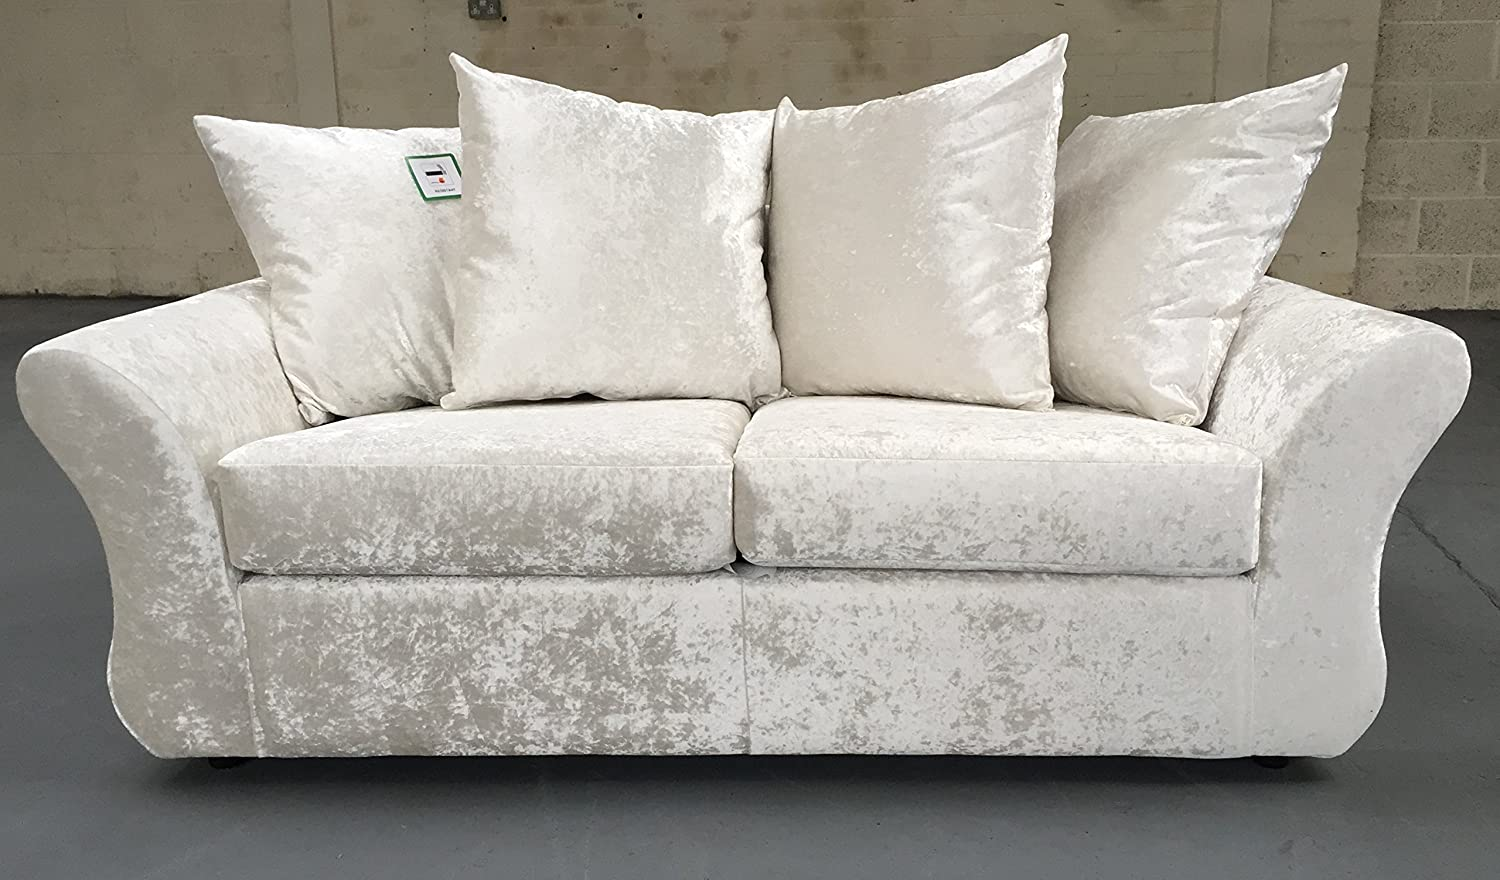 Couch Online Kaufen Simple Large Size Of Ideenkhles Modern Sofa Kaufen Xxl Sofa Xxl Couch